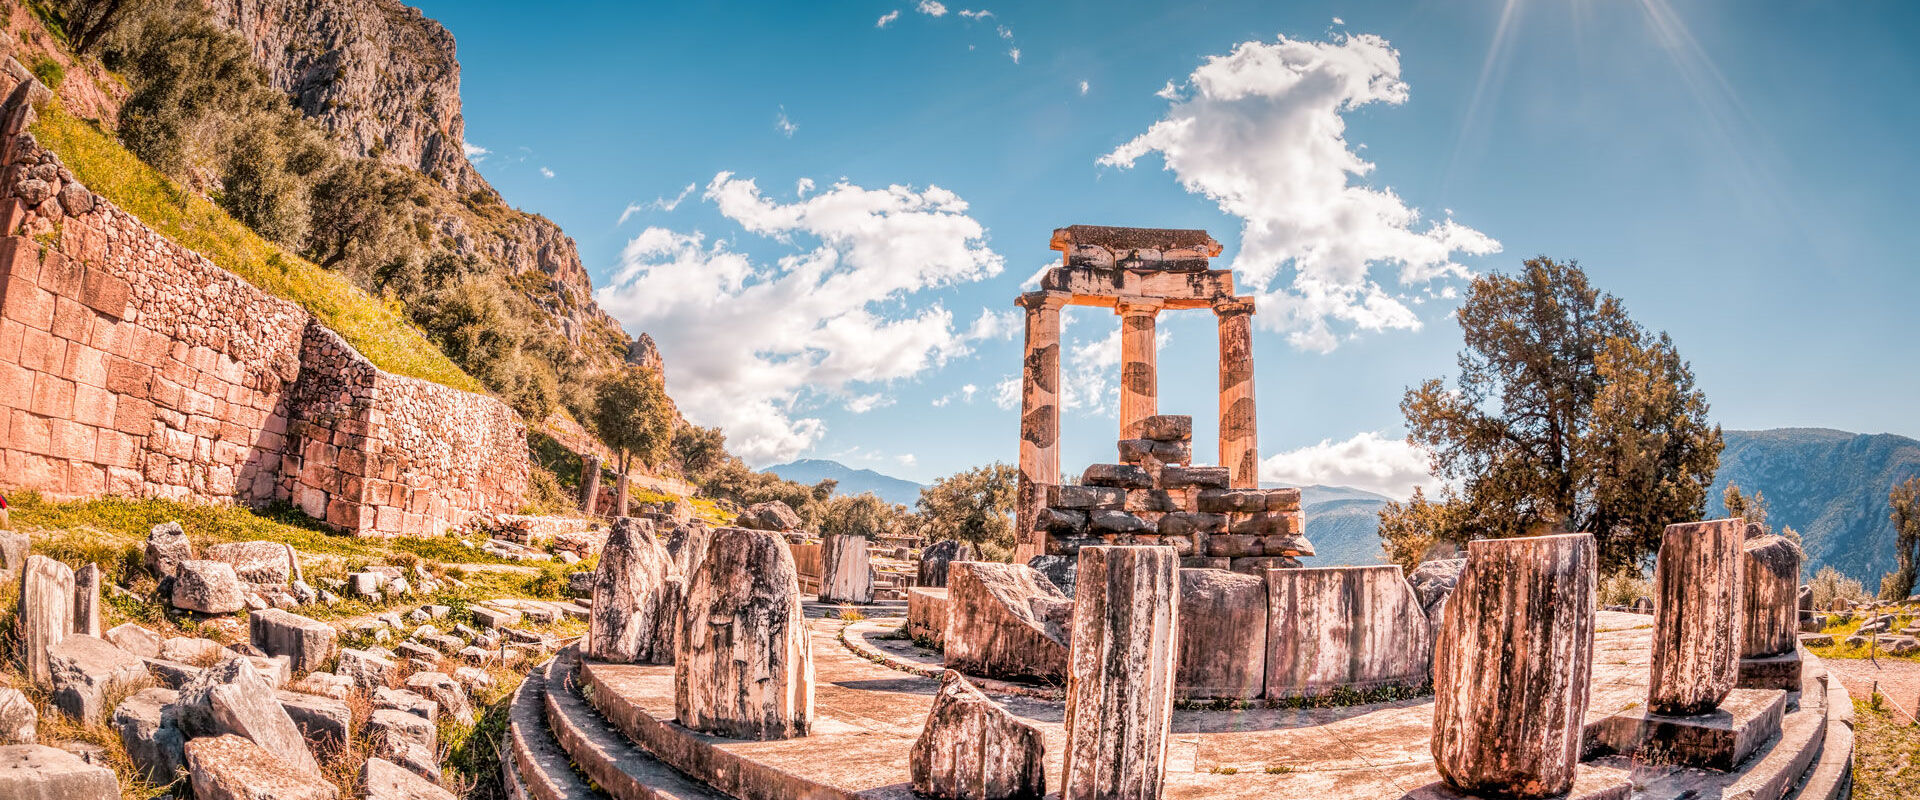 The Tholos of Athena pronaia, originally consisted of 20 Doric columns arranges around 10 Corinthian columns